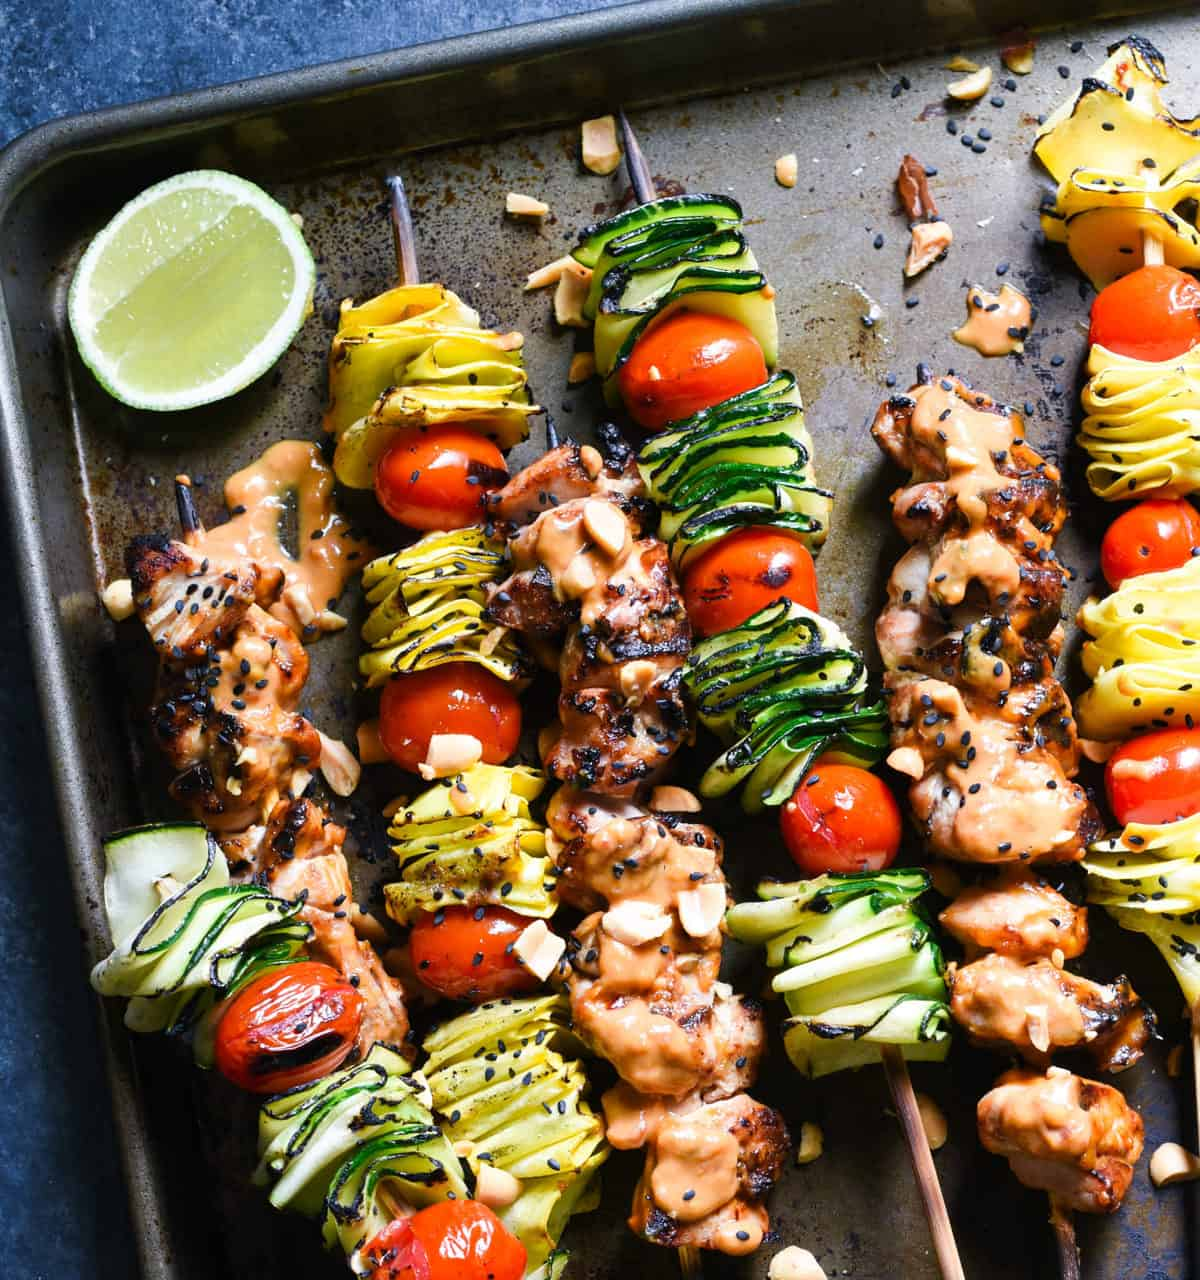 Spicy Peanut Chicken Skewers - The whole family will love this easy grilled take on peanut chicken satay. Serve with veggie skewers for a complete meal!   foxeslovelemons.com